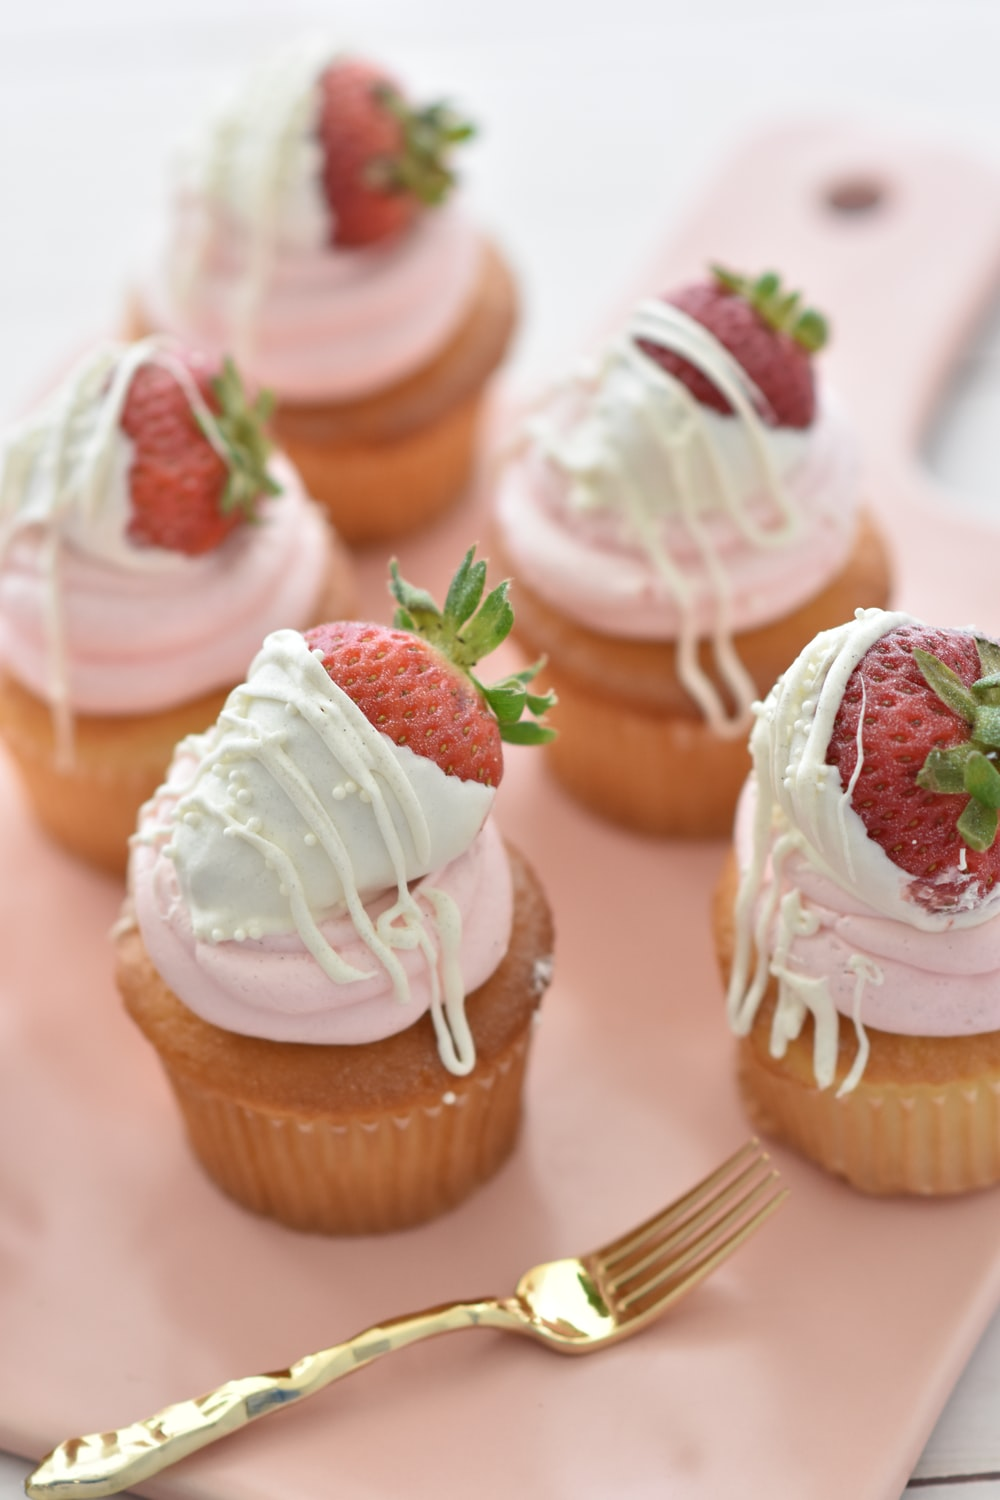 selective focus photography of cupcakes with icings